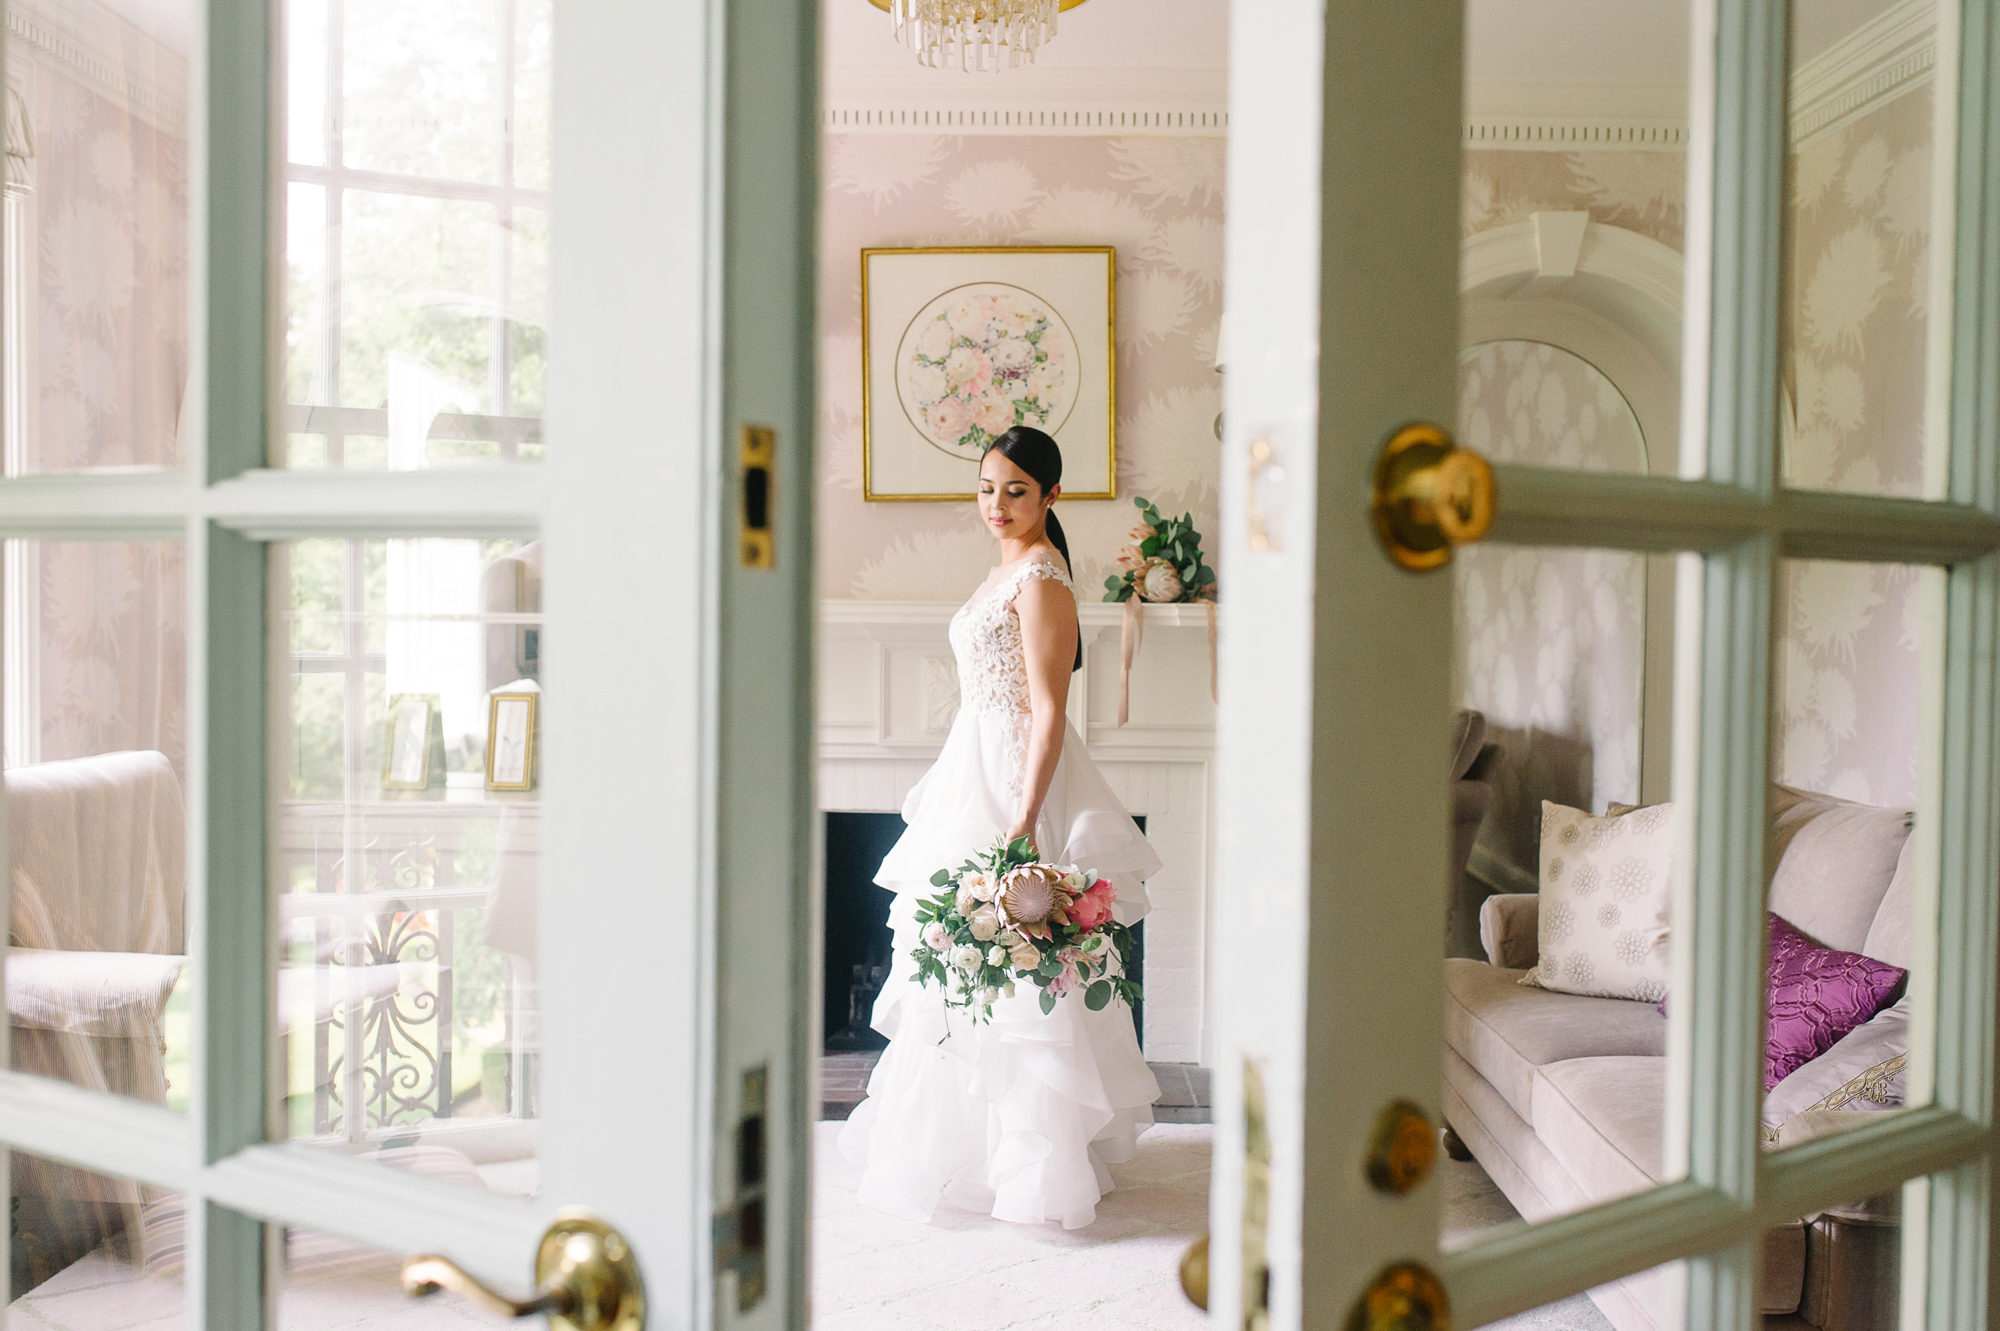 tara-mcmullen-photography-barb-simkova-mclean-house-wedding-estates-of-sunnybrook-wedding-shealyn-angus-wedding-blush-and-bloom-wedding-013